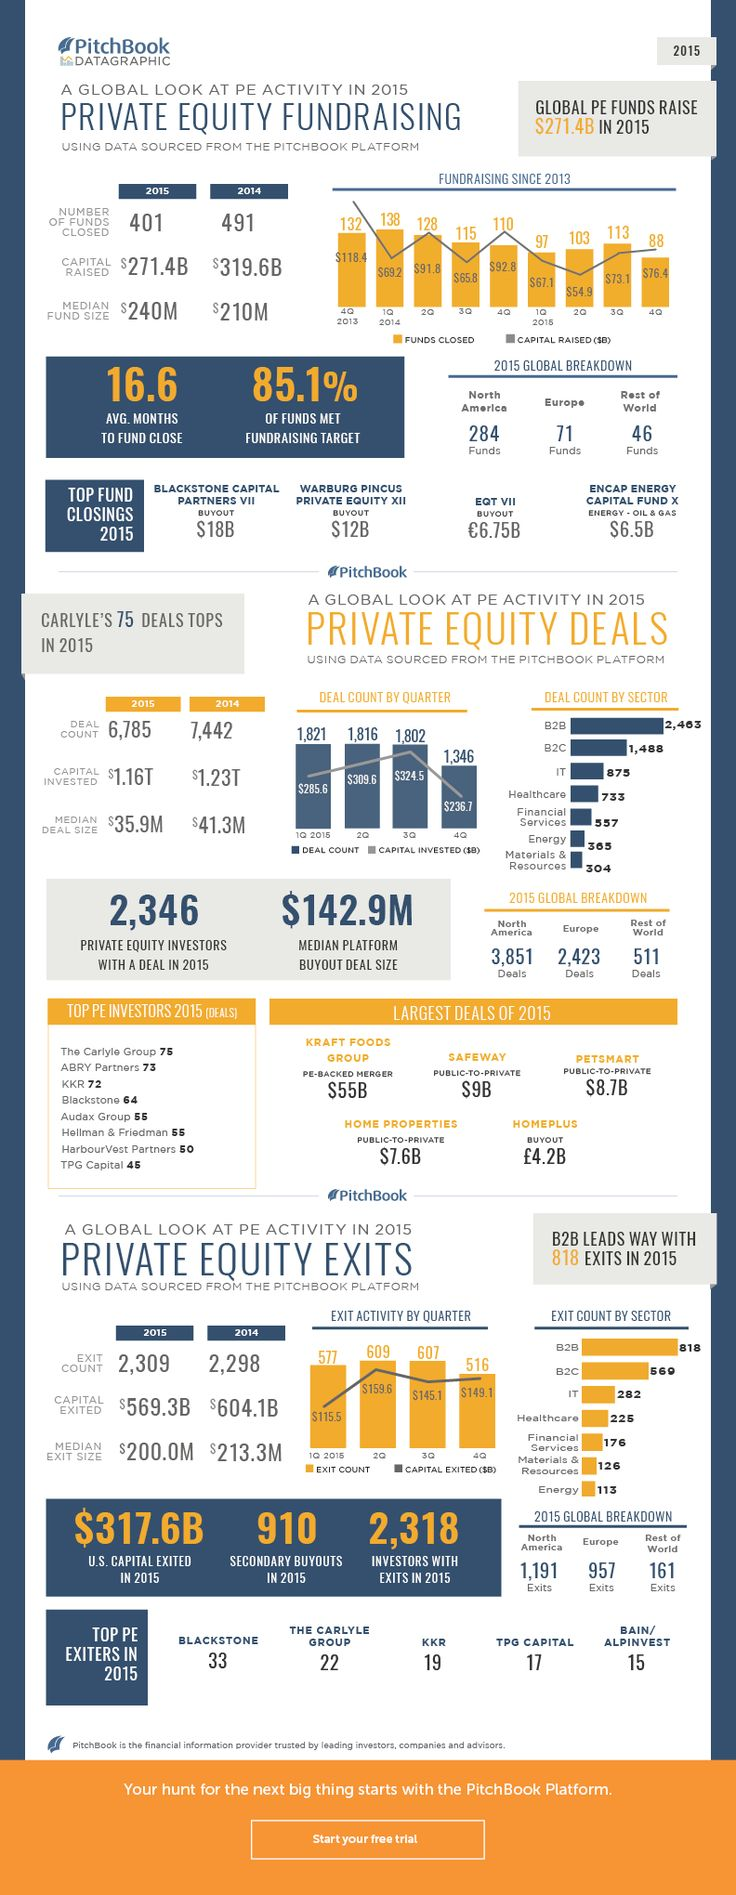 A visual breakdown of global PE activity in 2015 [datagraphic] | PitchBook News